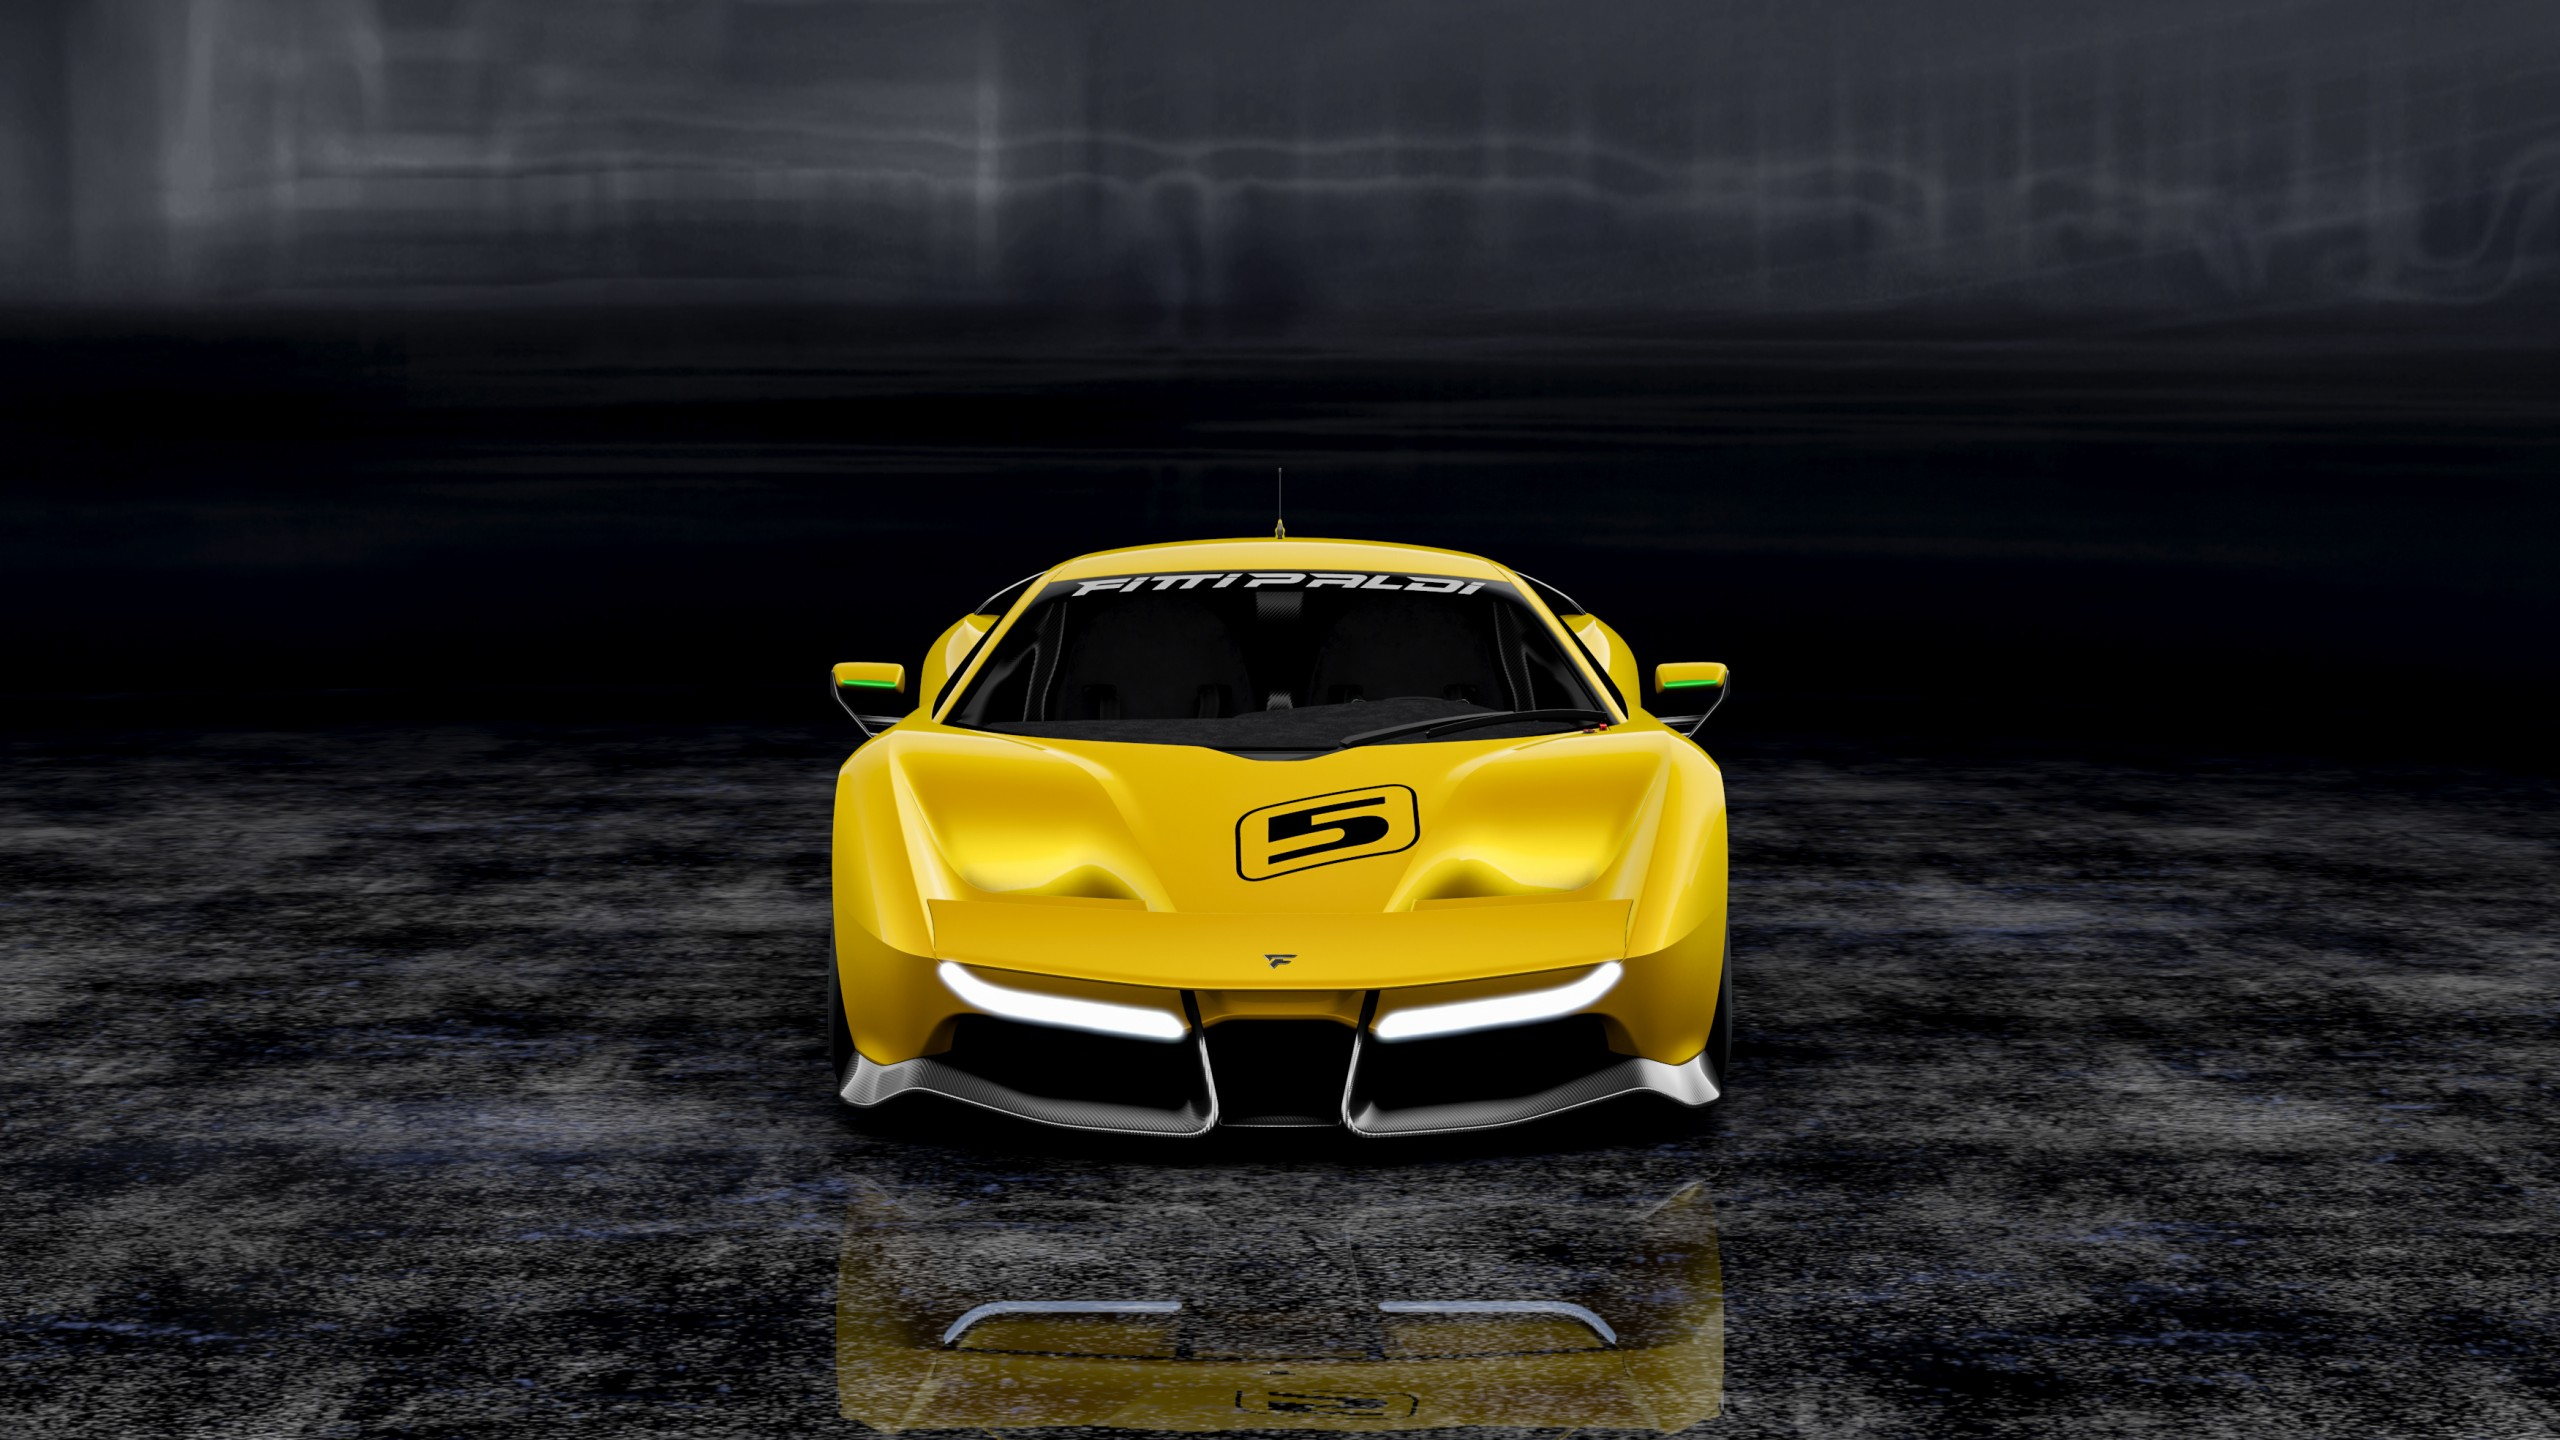 Cars Wallpapers 2014 Hd Download 2017 Fittipaldi Ef7 Vision Gran Turismo 2 Wallpaper Hd